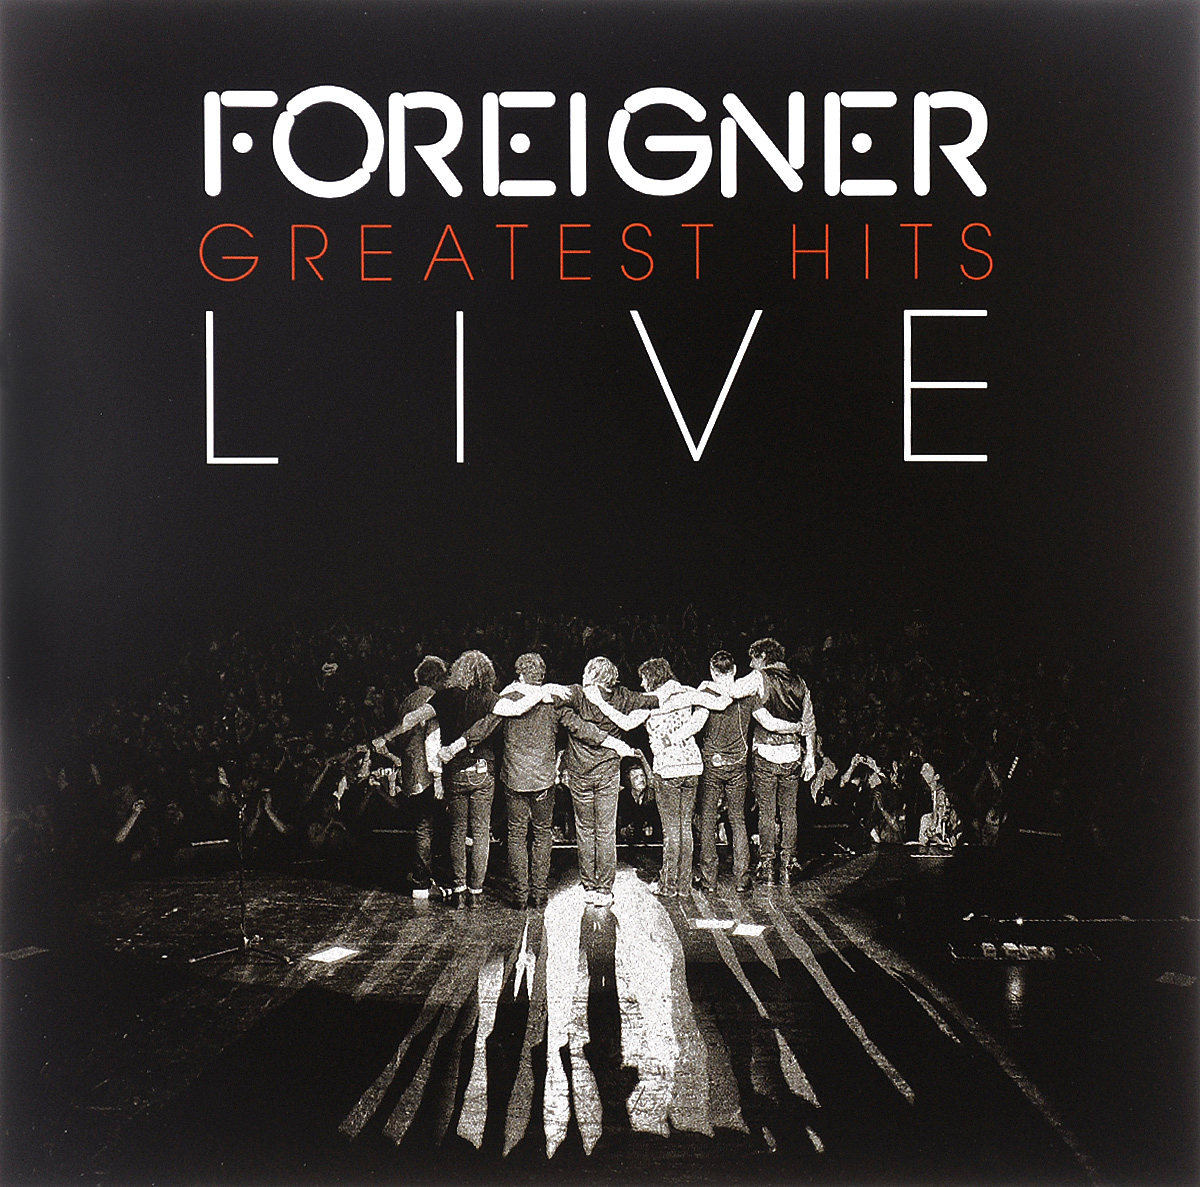 Foreigner. Greatest Hits. Live